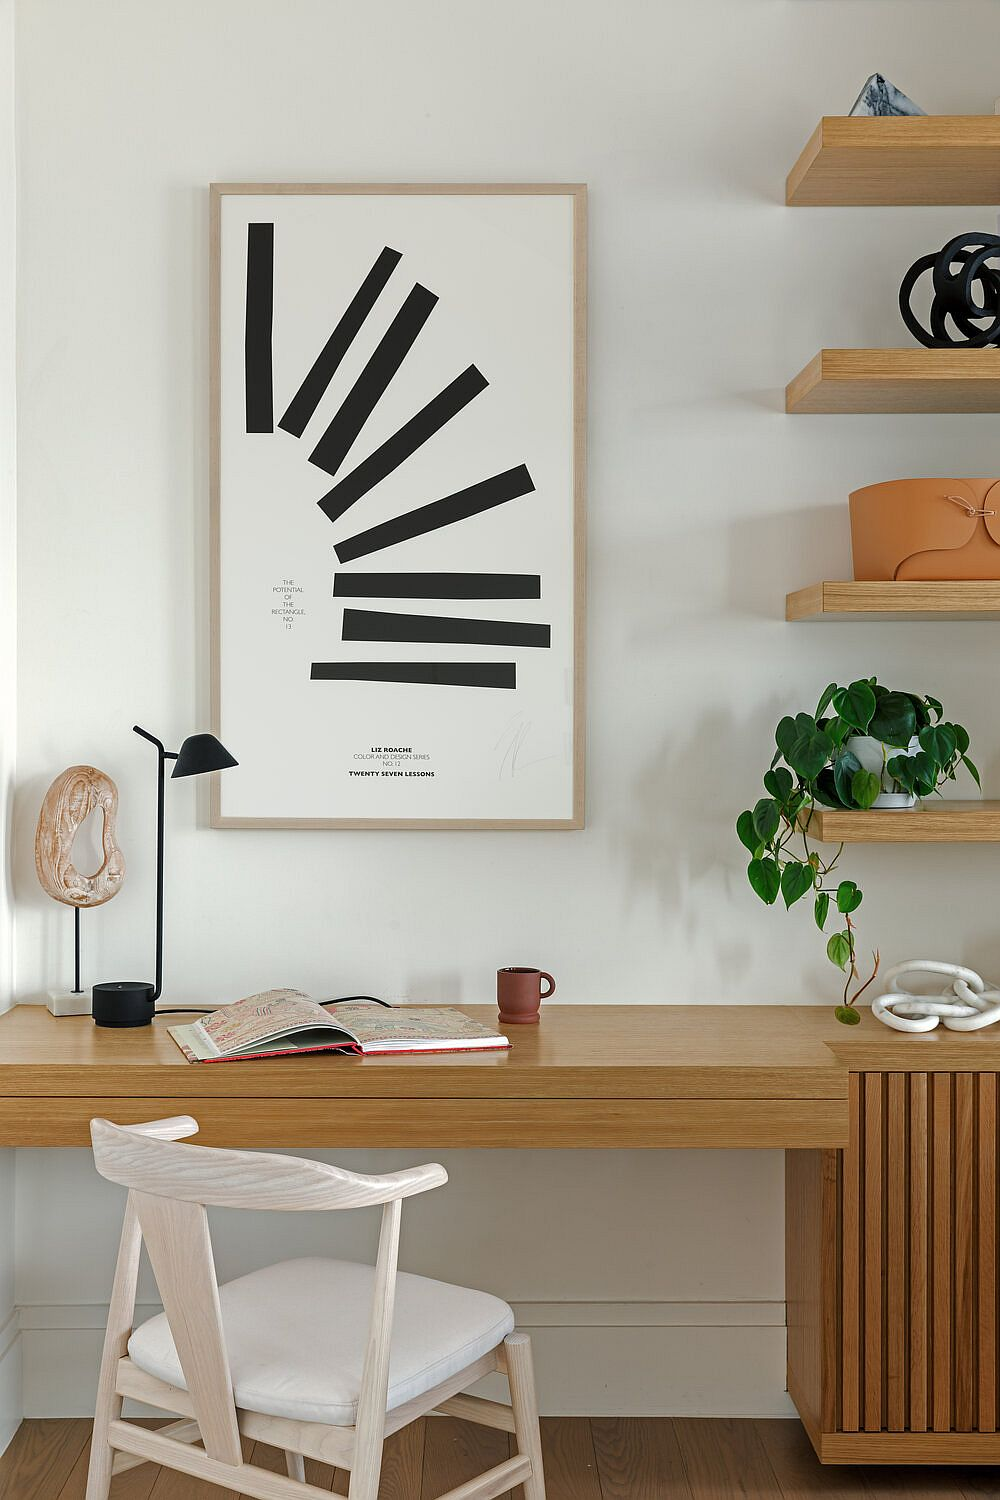 Easy and elegant home workspace created using a floating wooden desk and comfy chair